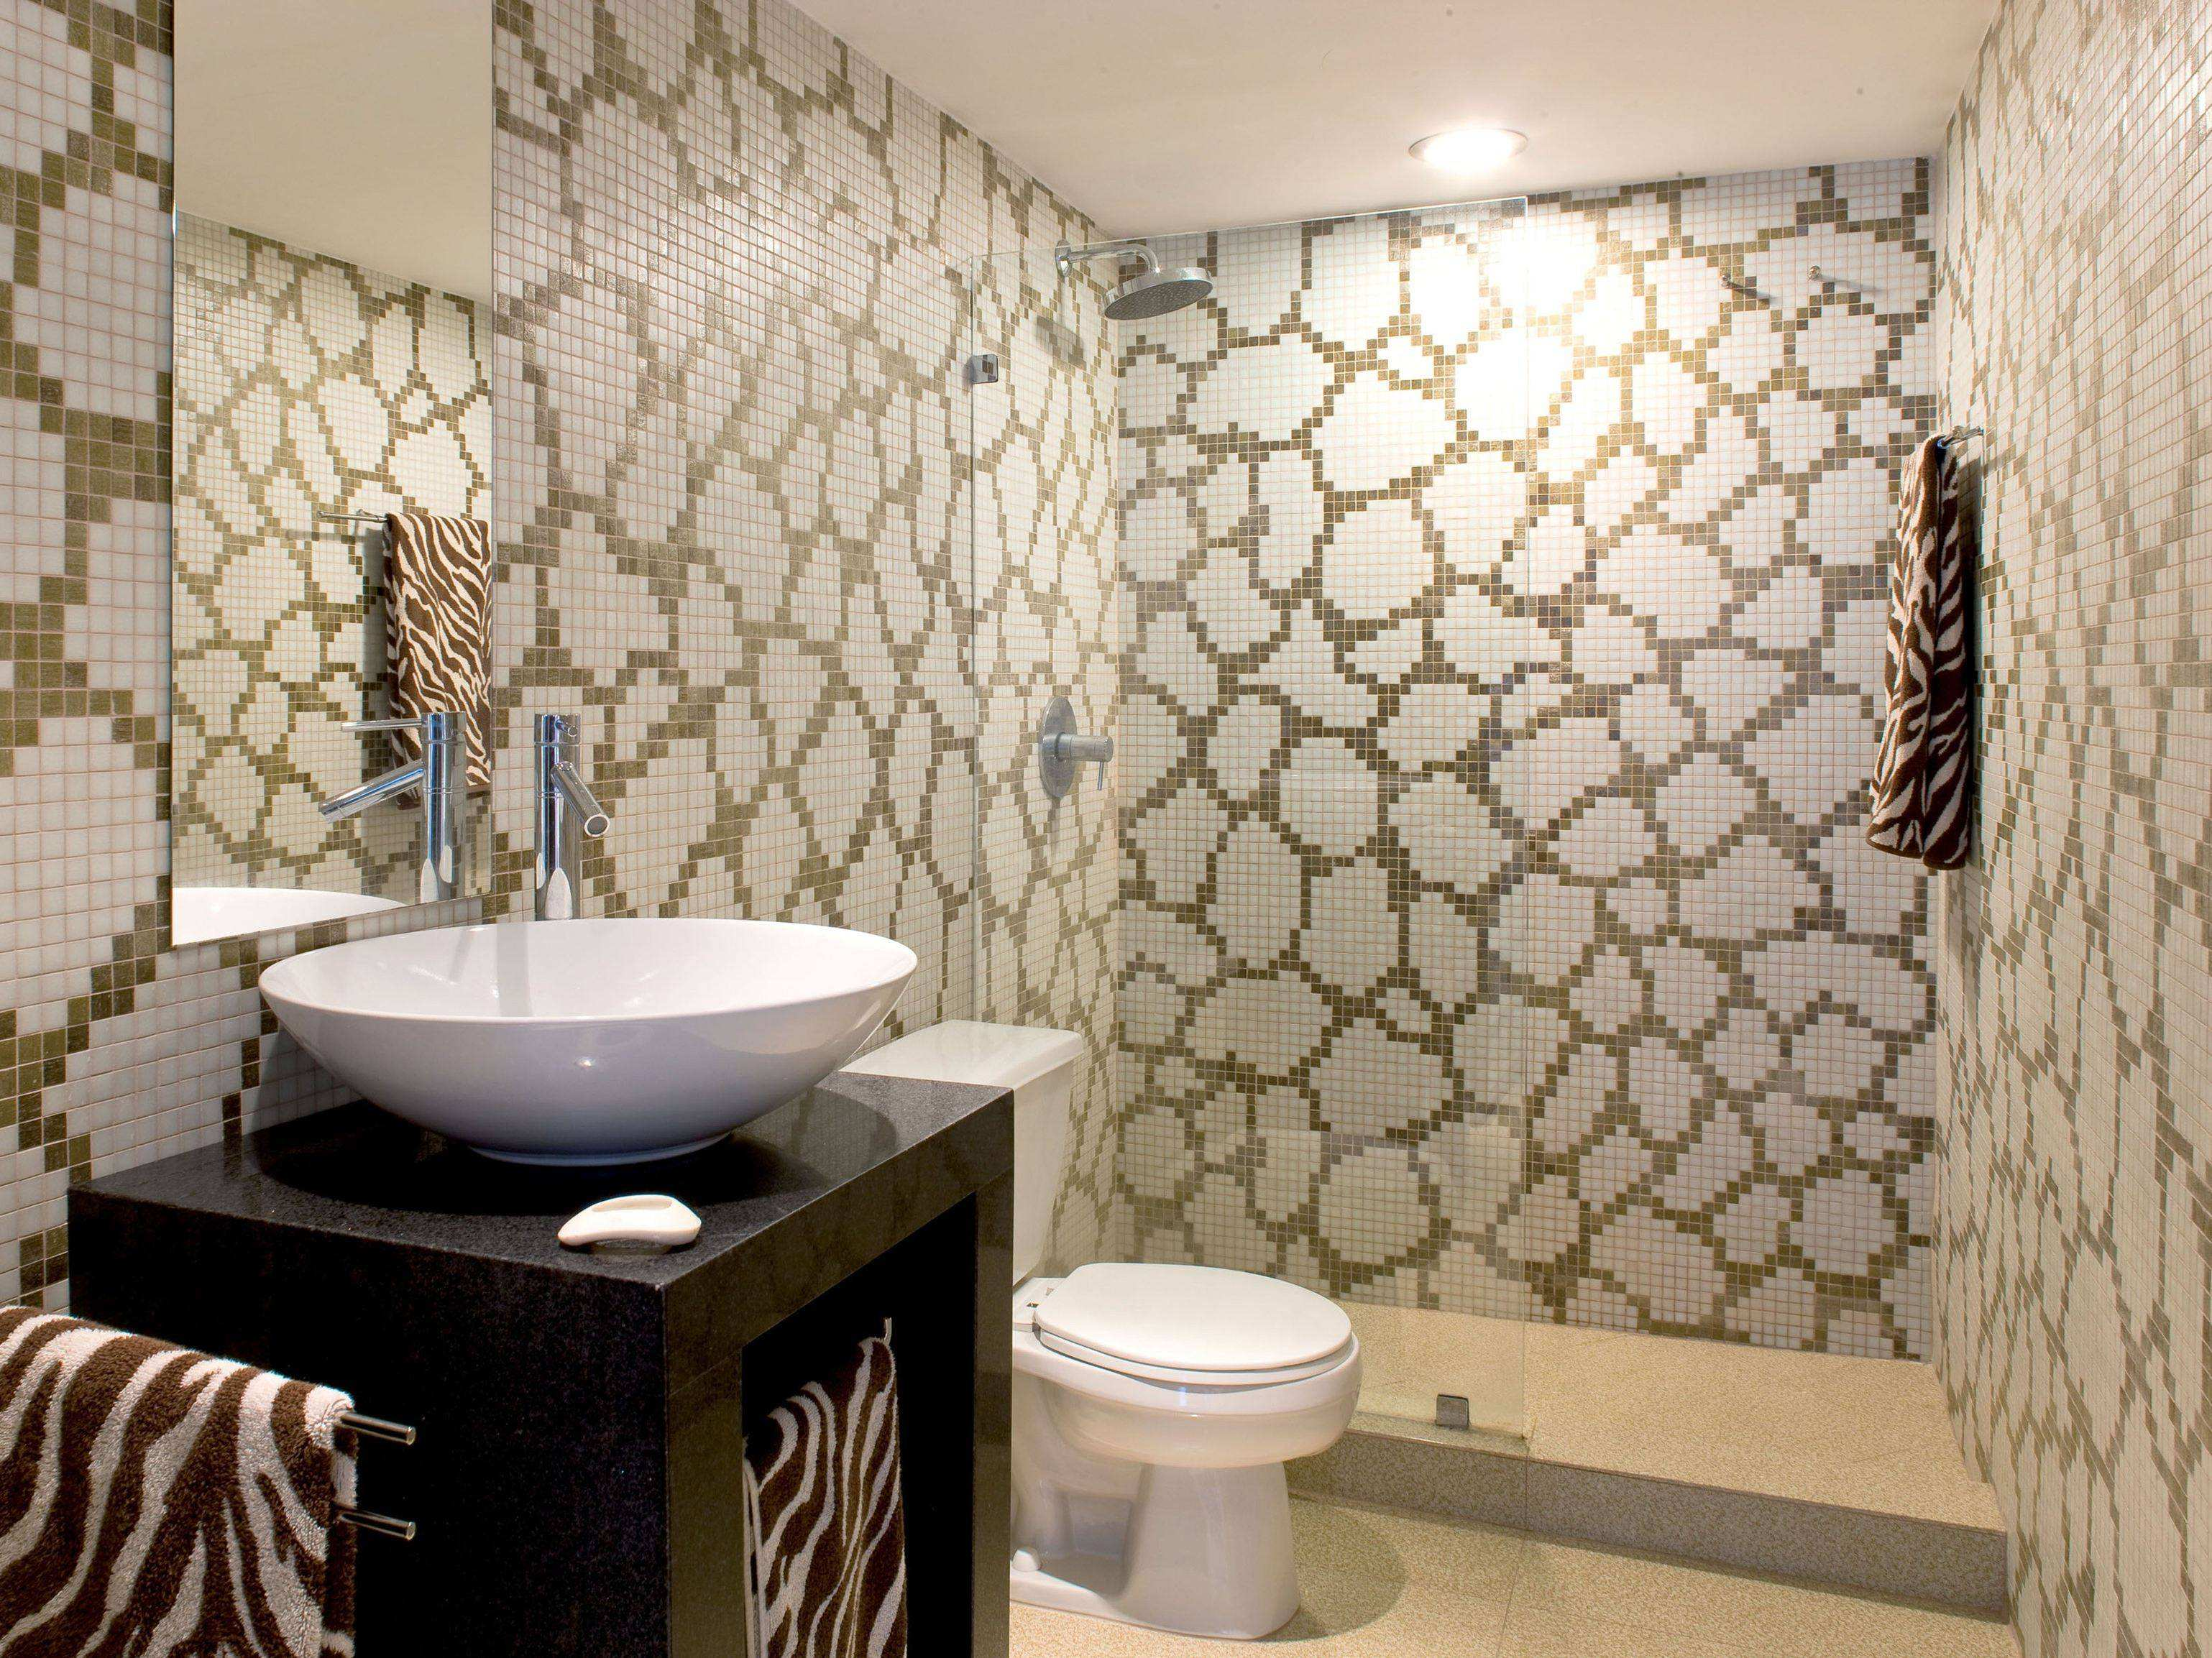 Badezimmer Mosaik Mosaico De Vidrio Feel by Trend Group